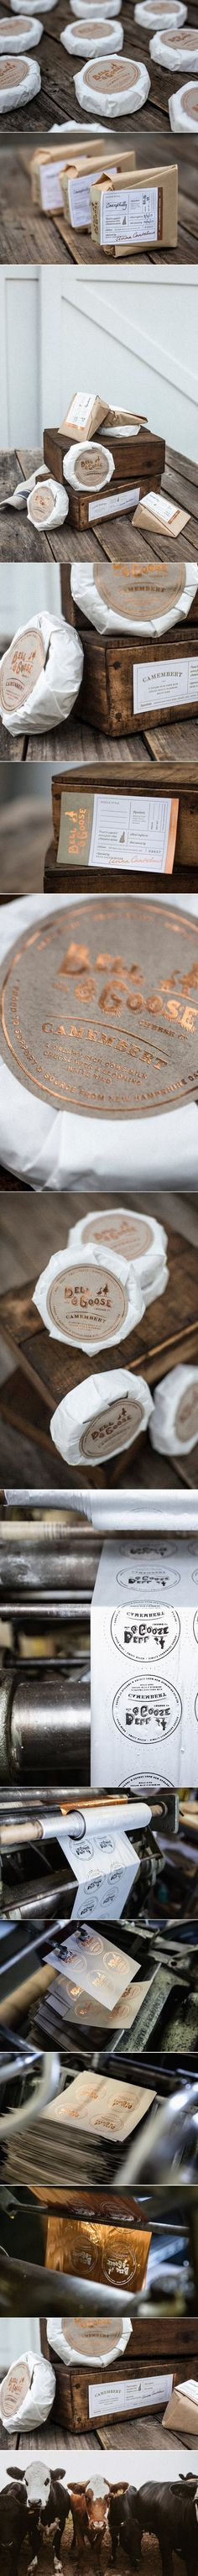 Bell & Goose Is a High Quality Cheese Brand With Vintage Inspired Packaging — The Dieline | Packaging & Branding Design & Innovation News